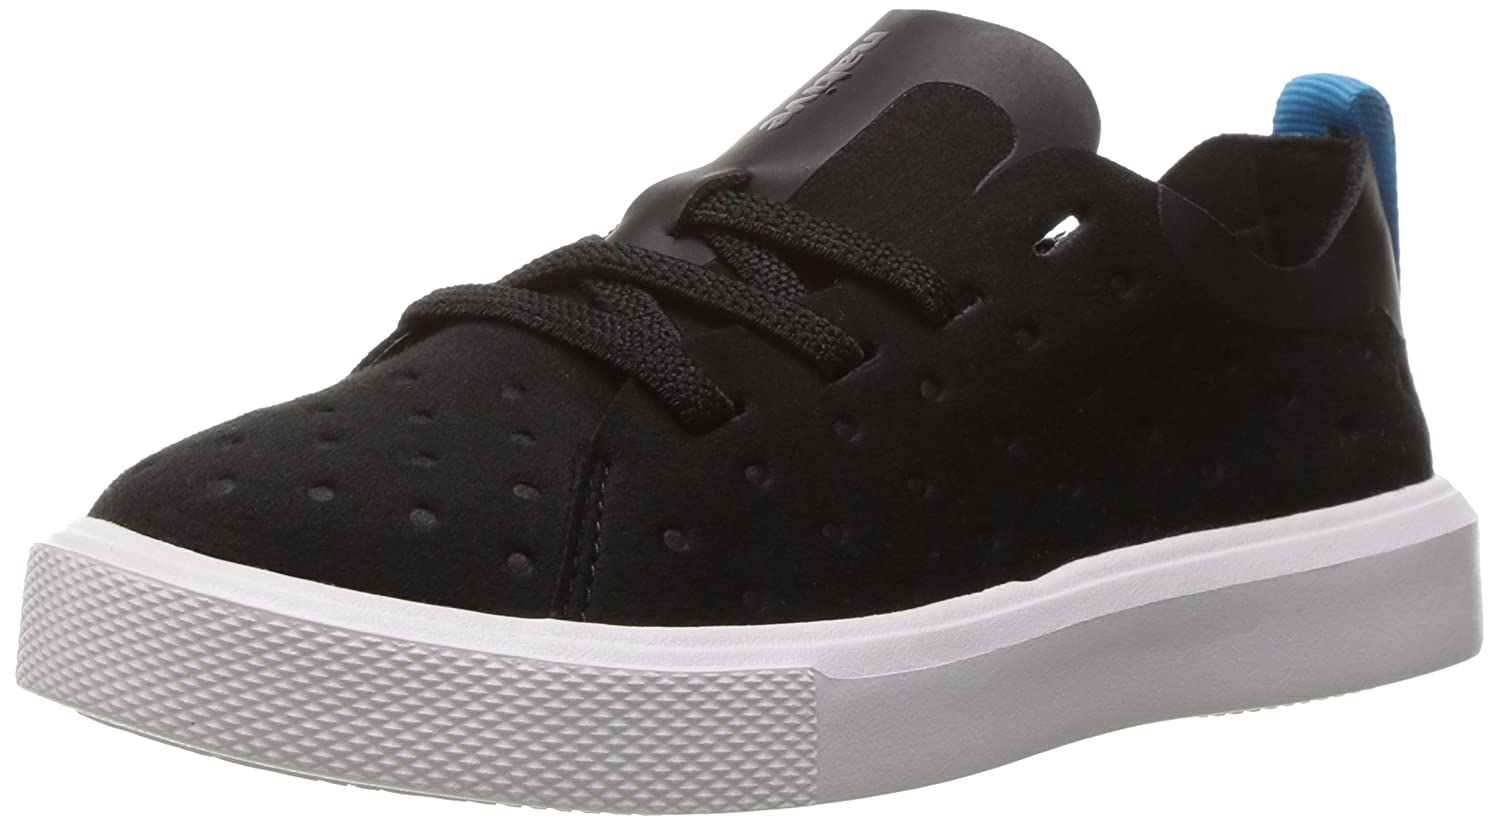 Native Kids Kids' Monaco Low Slip-on Monaco Low - K